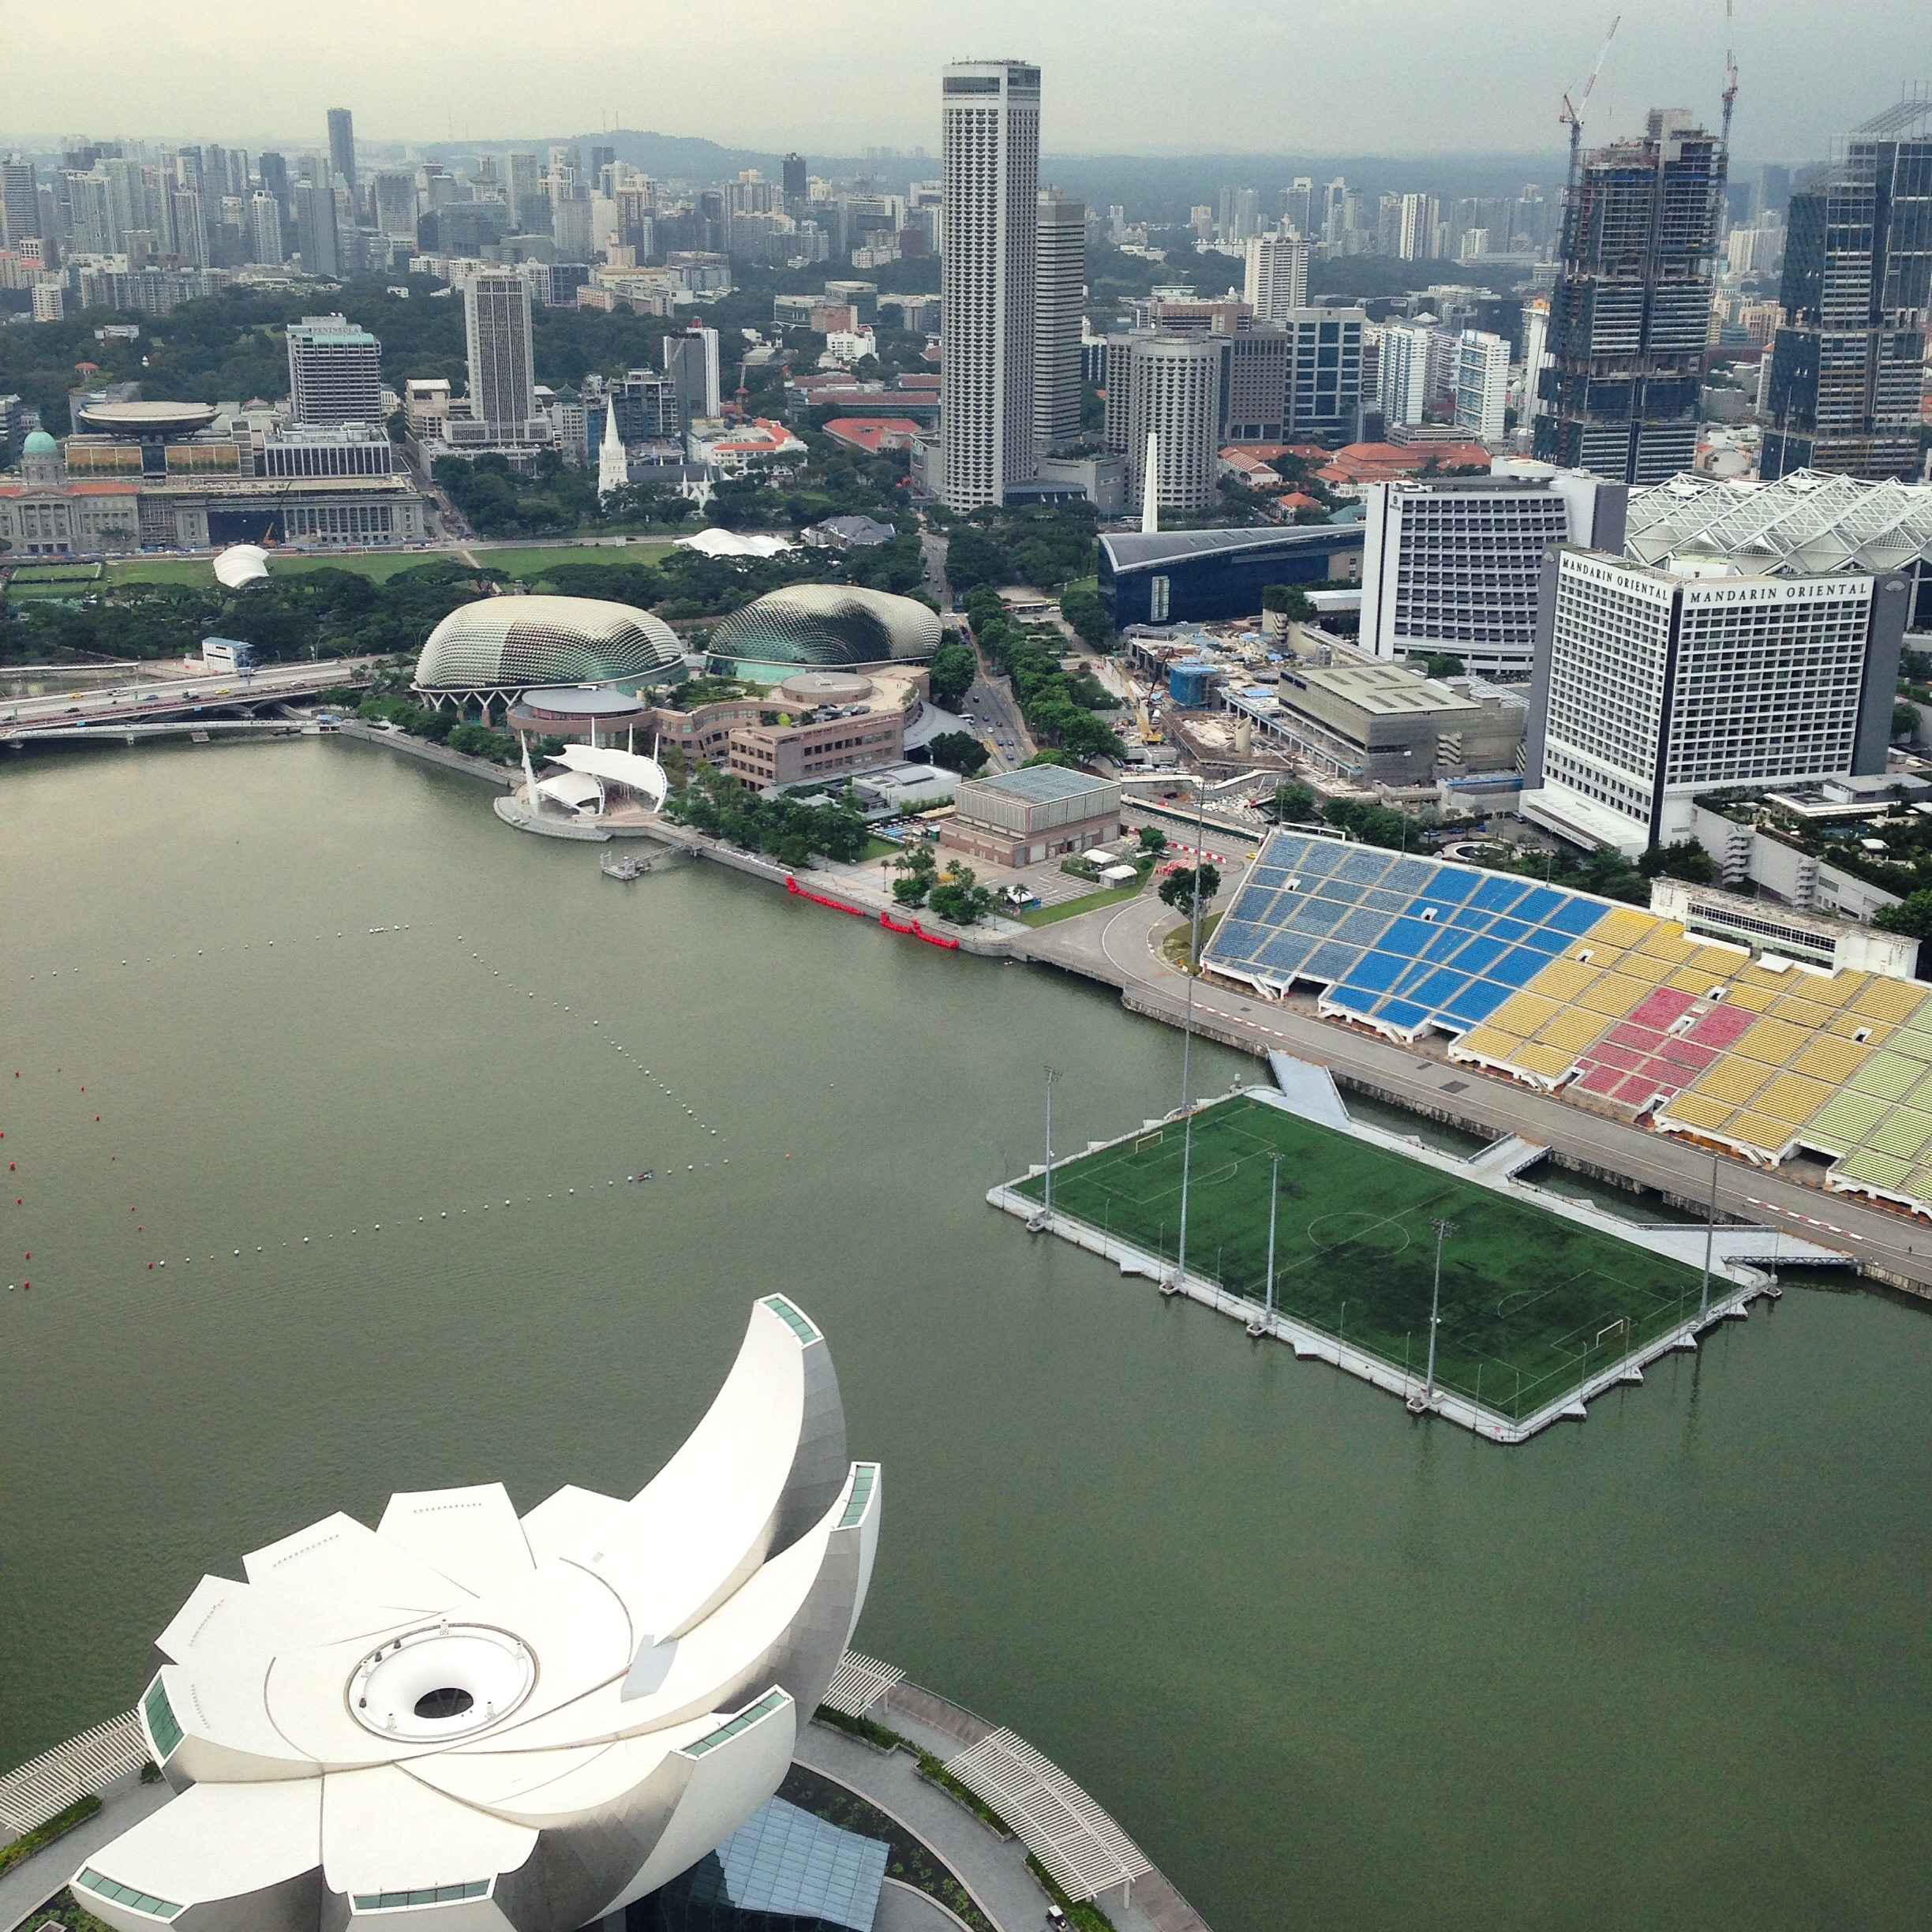 The Amphitheater in front of the Marina Bay Sands